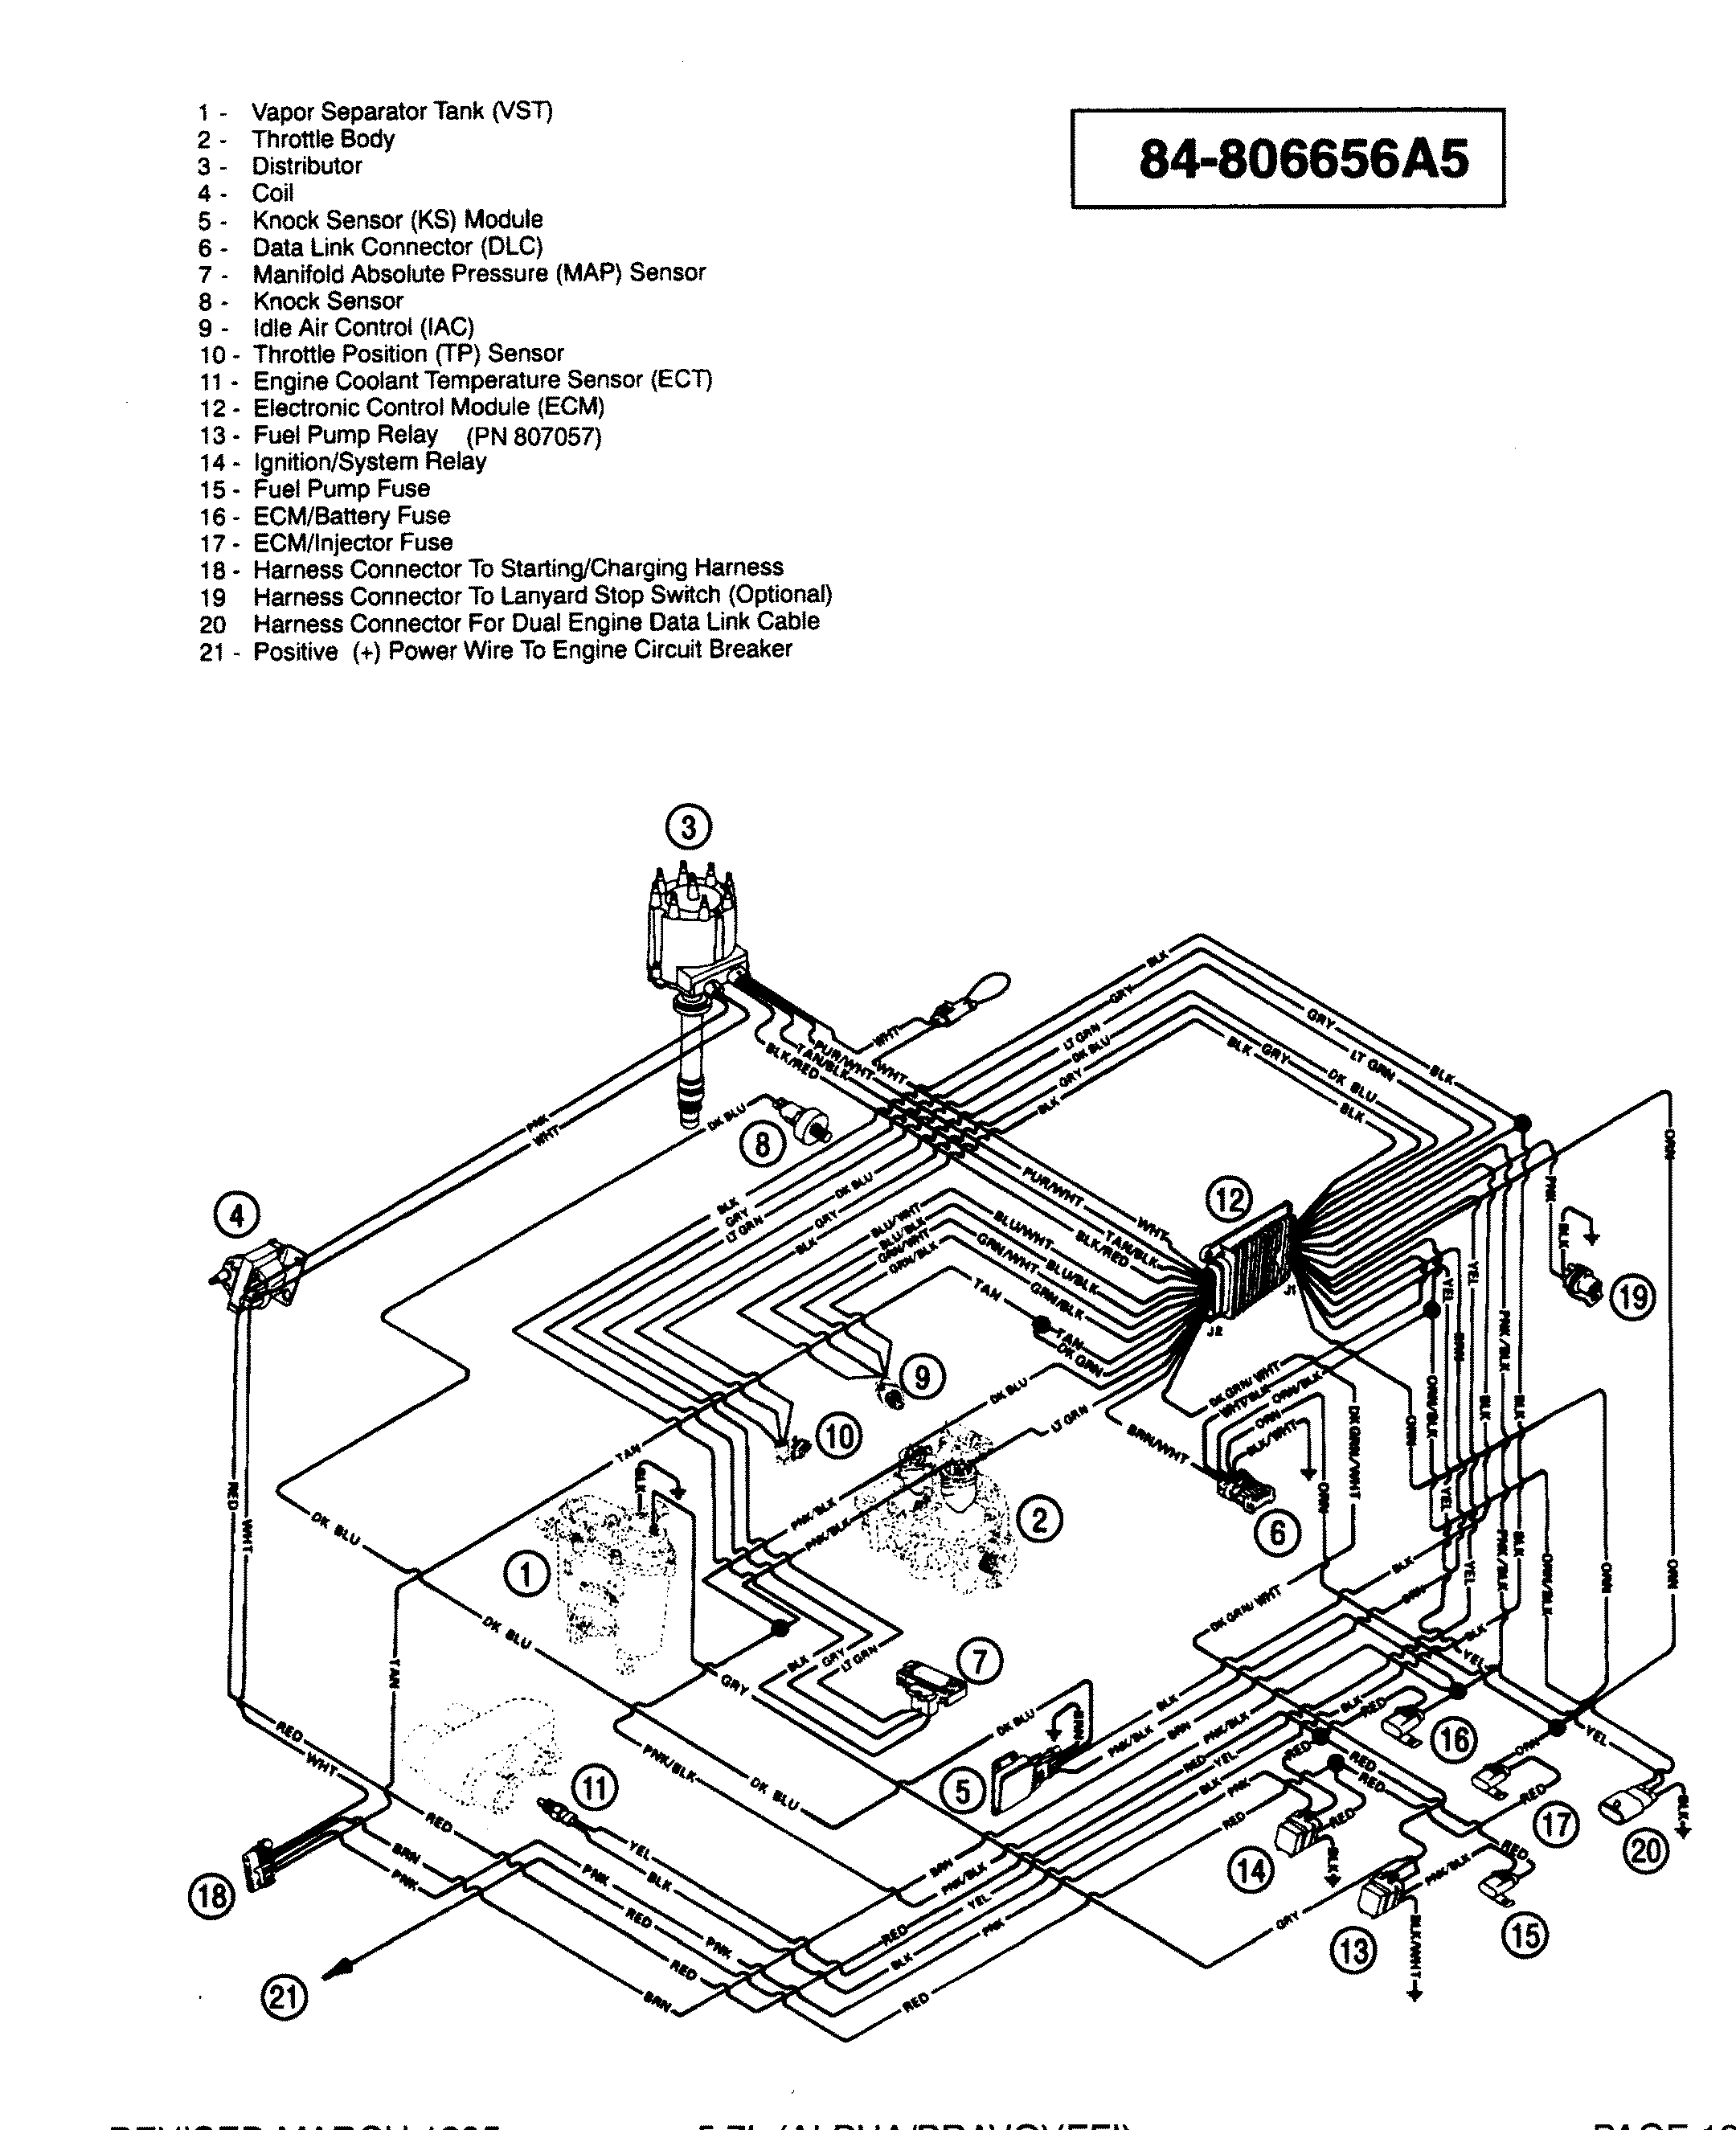 1982 Mercruiser 5 7 Wiring Diagram : 34 Wiring Diagram